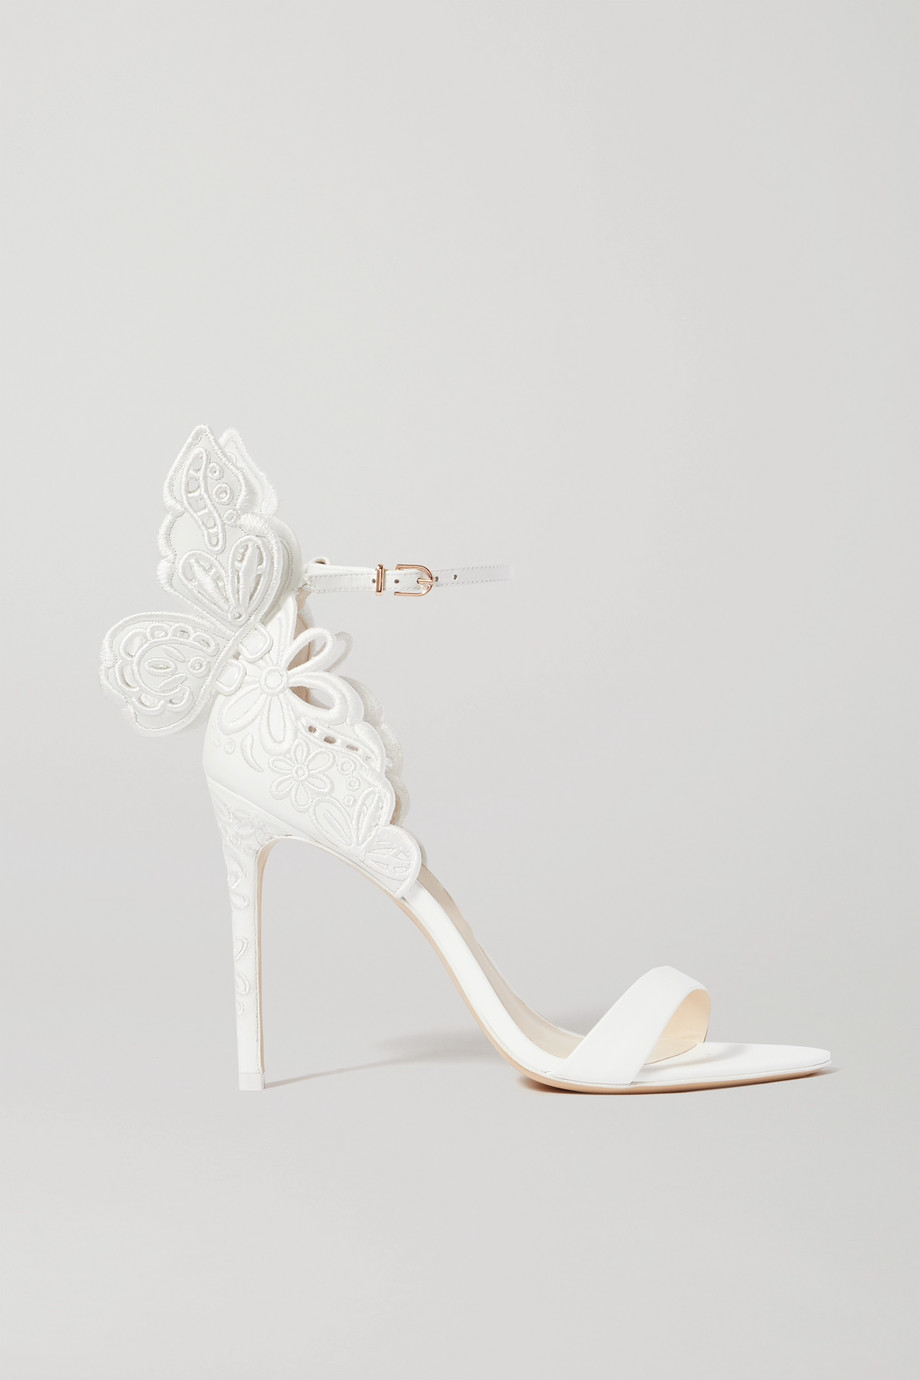 Sophia Webster Chiara embroidered leather sandals